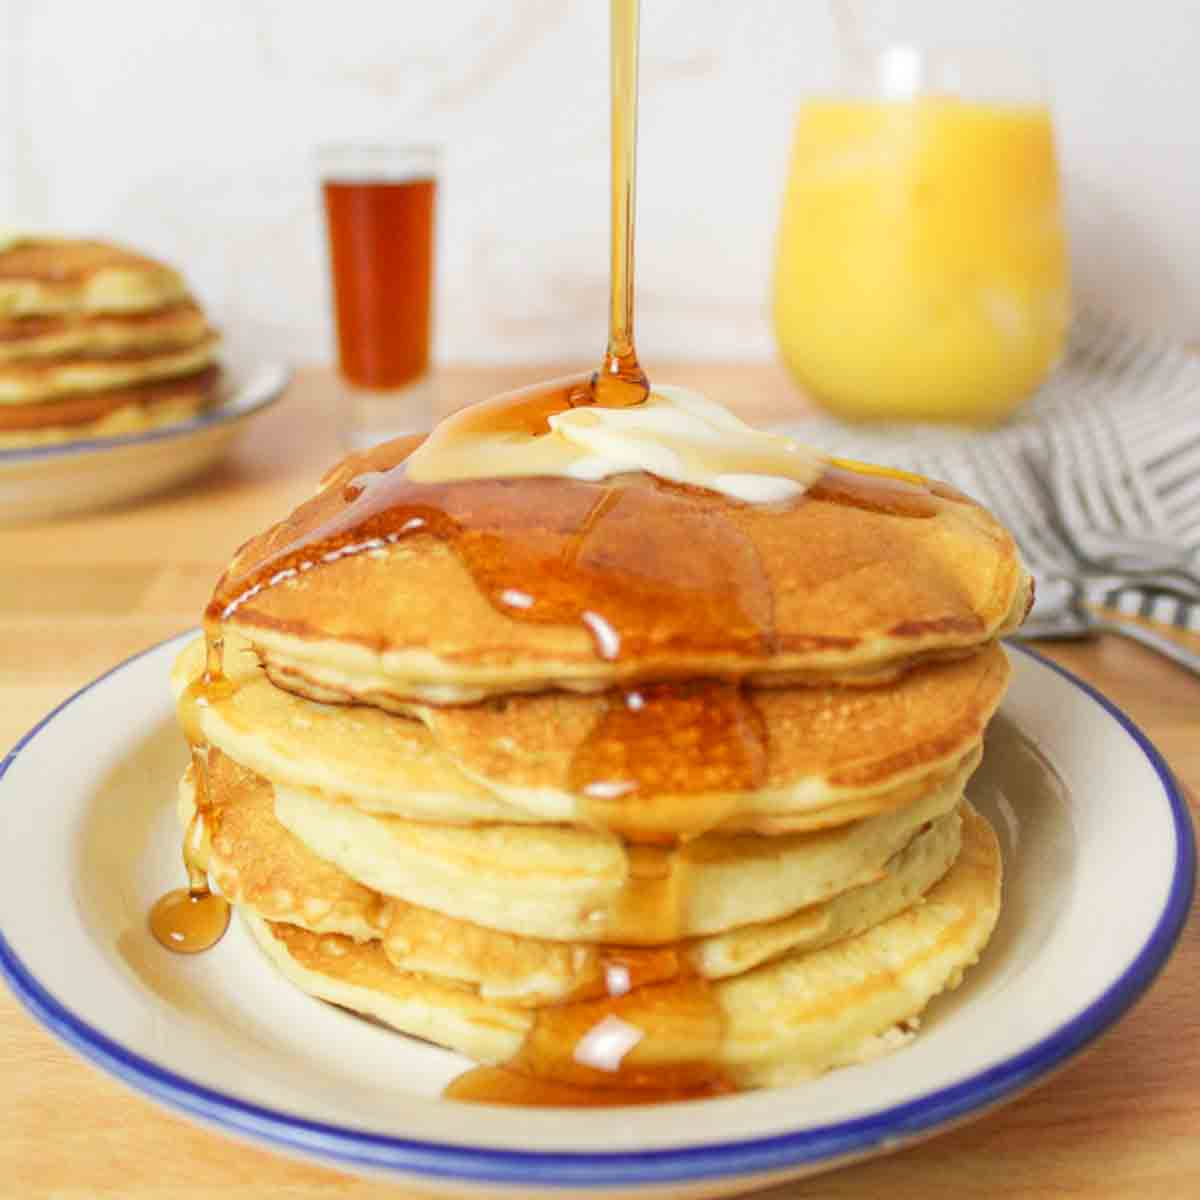 syrup drizzling over the top of butter topped pancakes